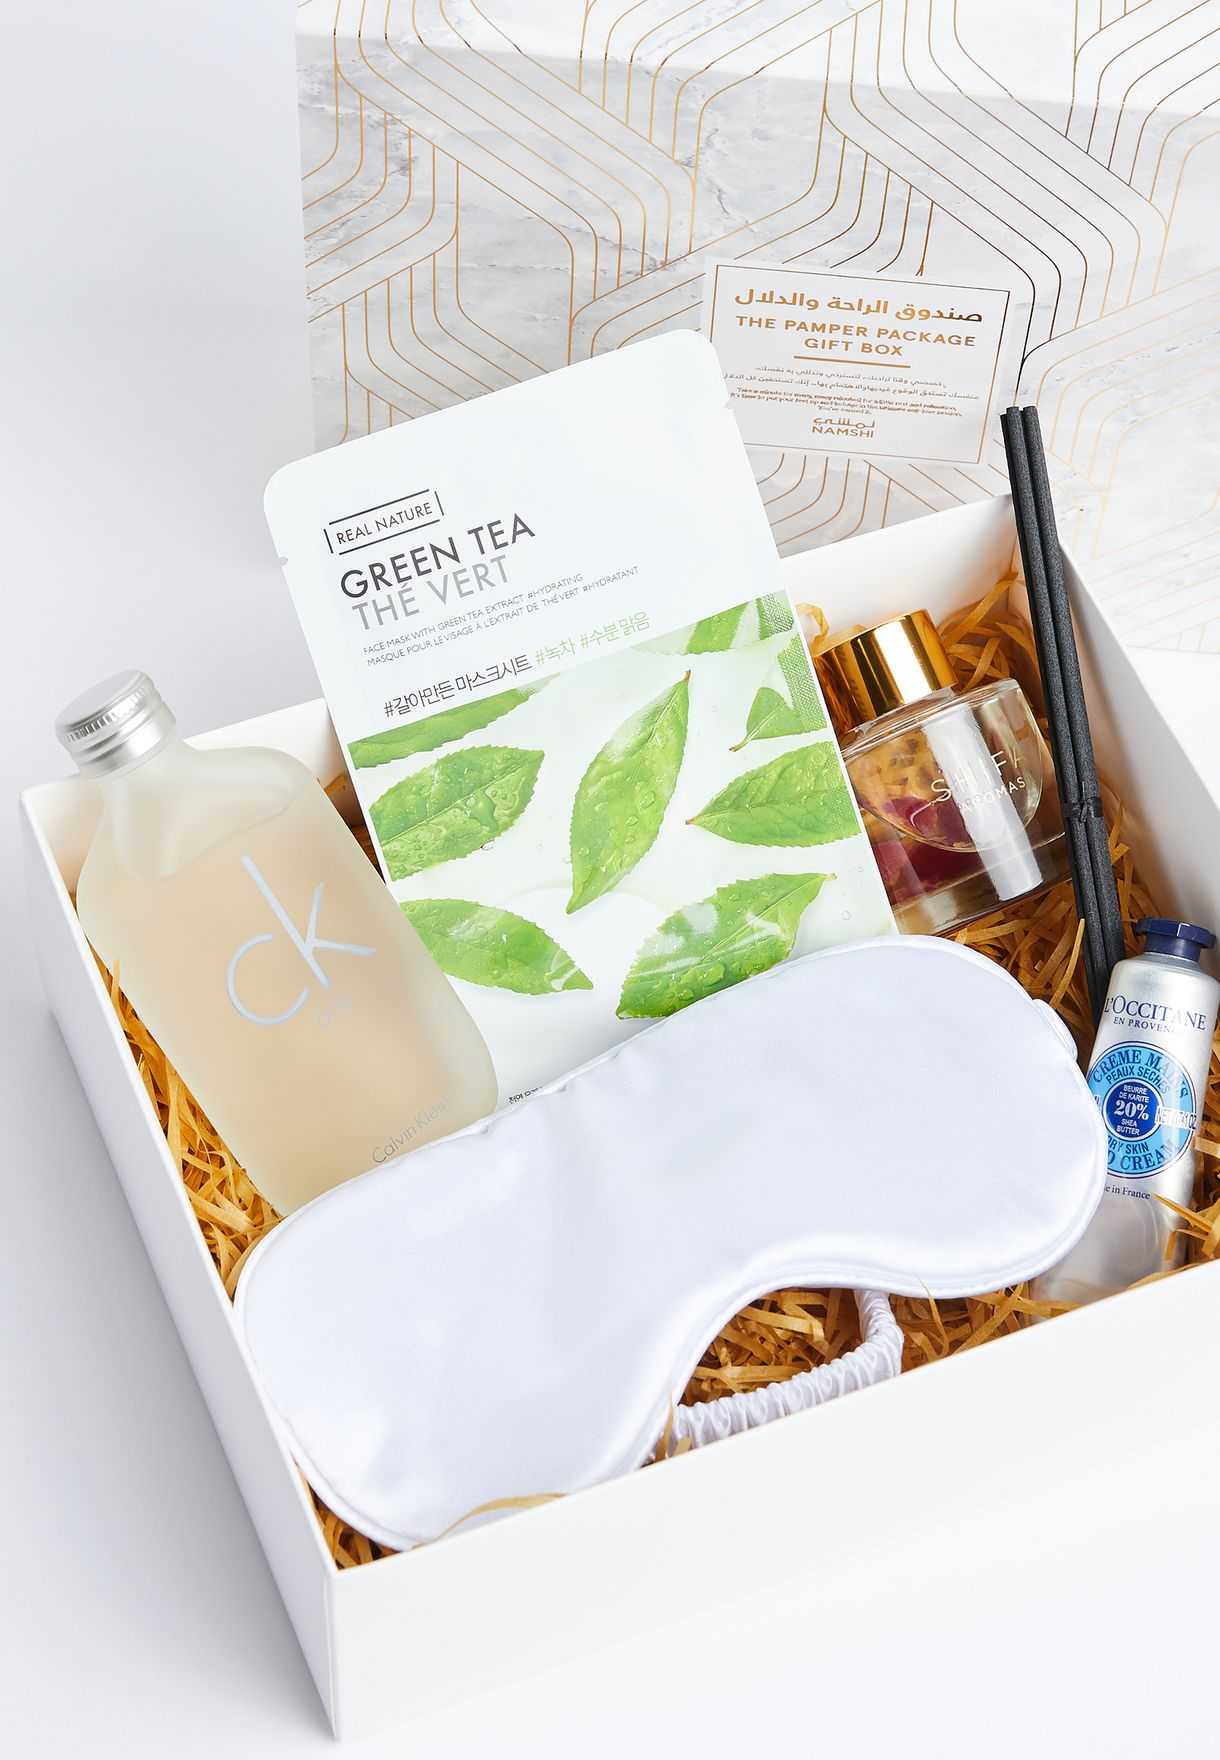 The Pamper Package Gift Box Worth 359 Aed / 392 Sar